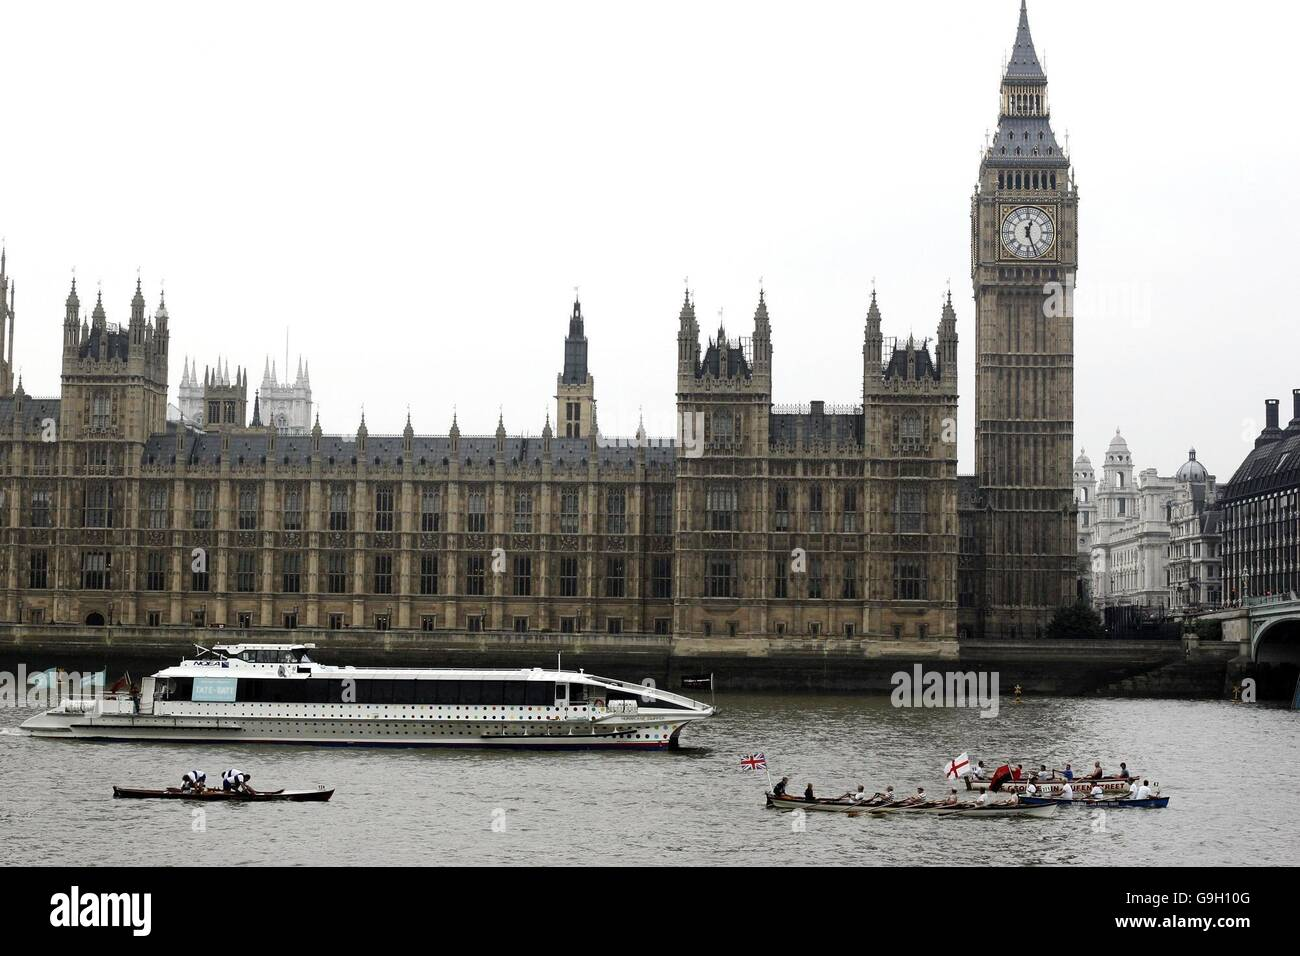 Boats go past the Houses of Parliament in central London as they take part in The Great River Boat Race 2006, from - Stock Image